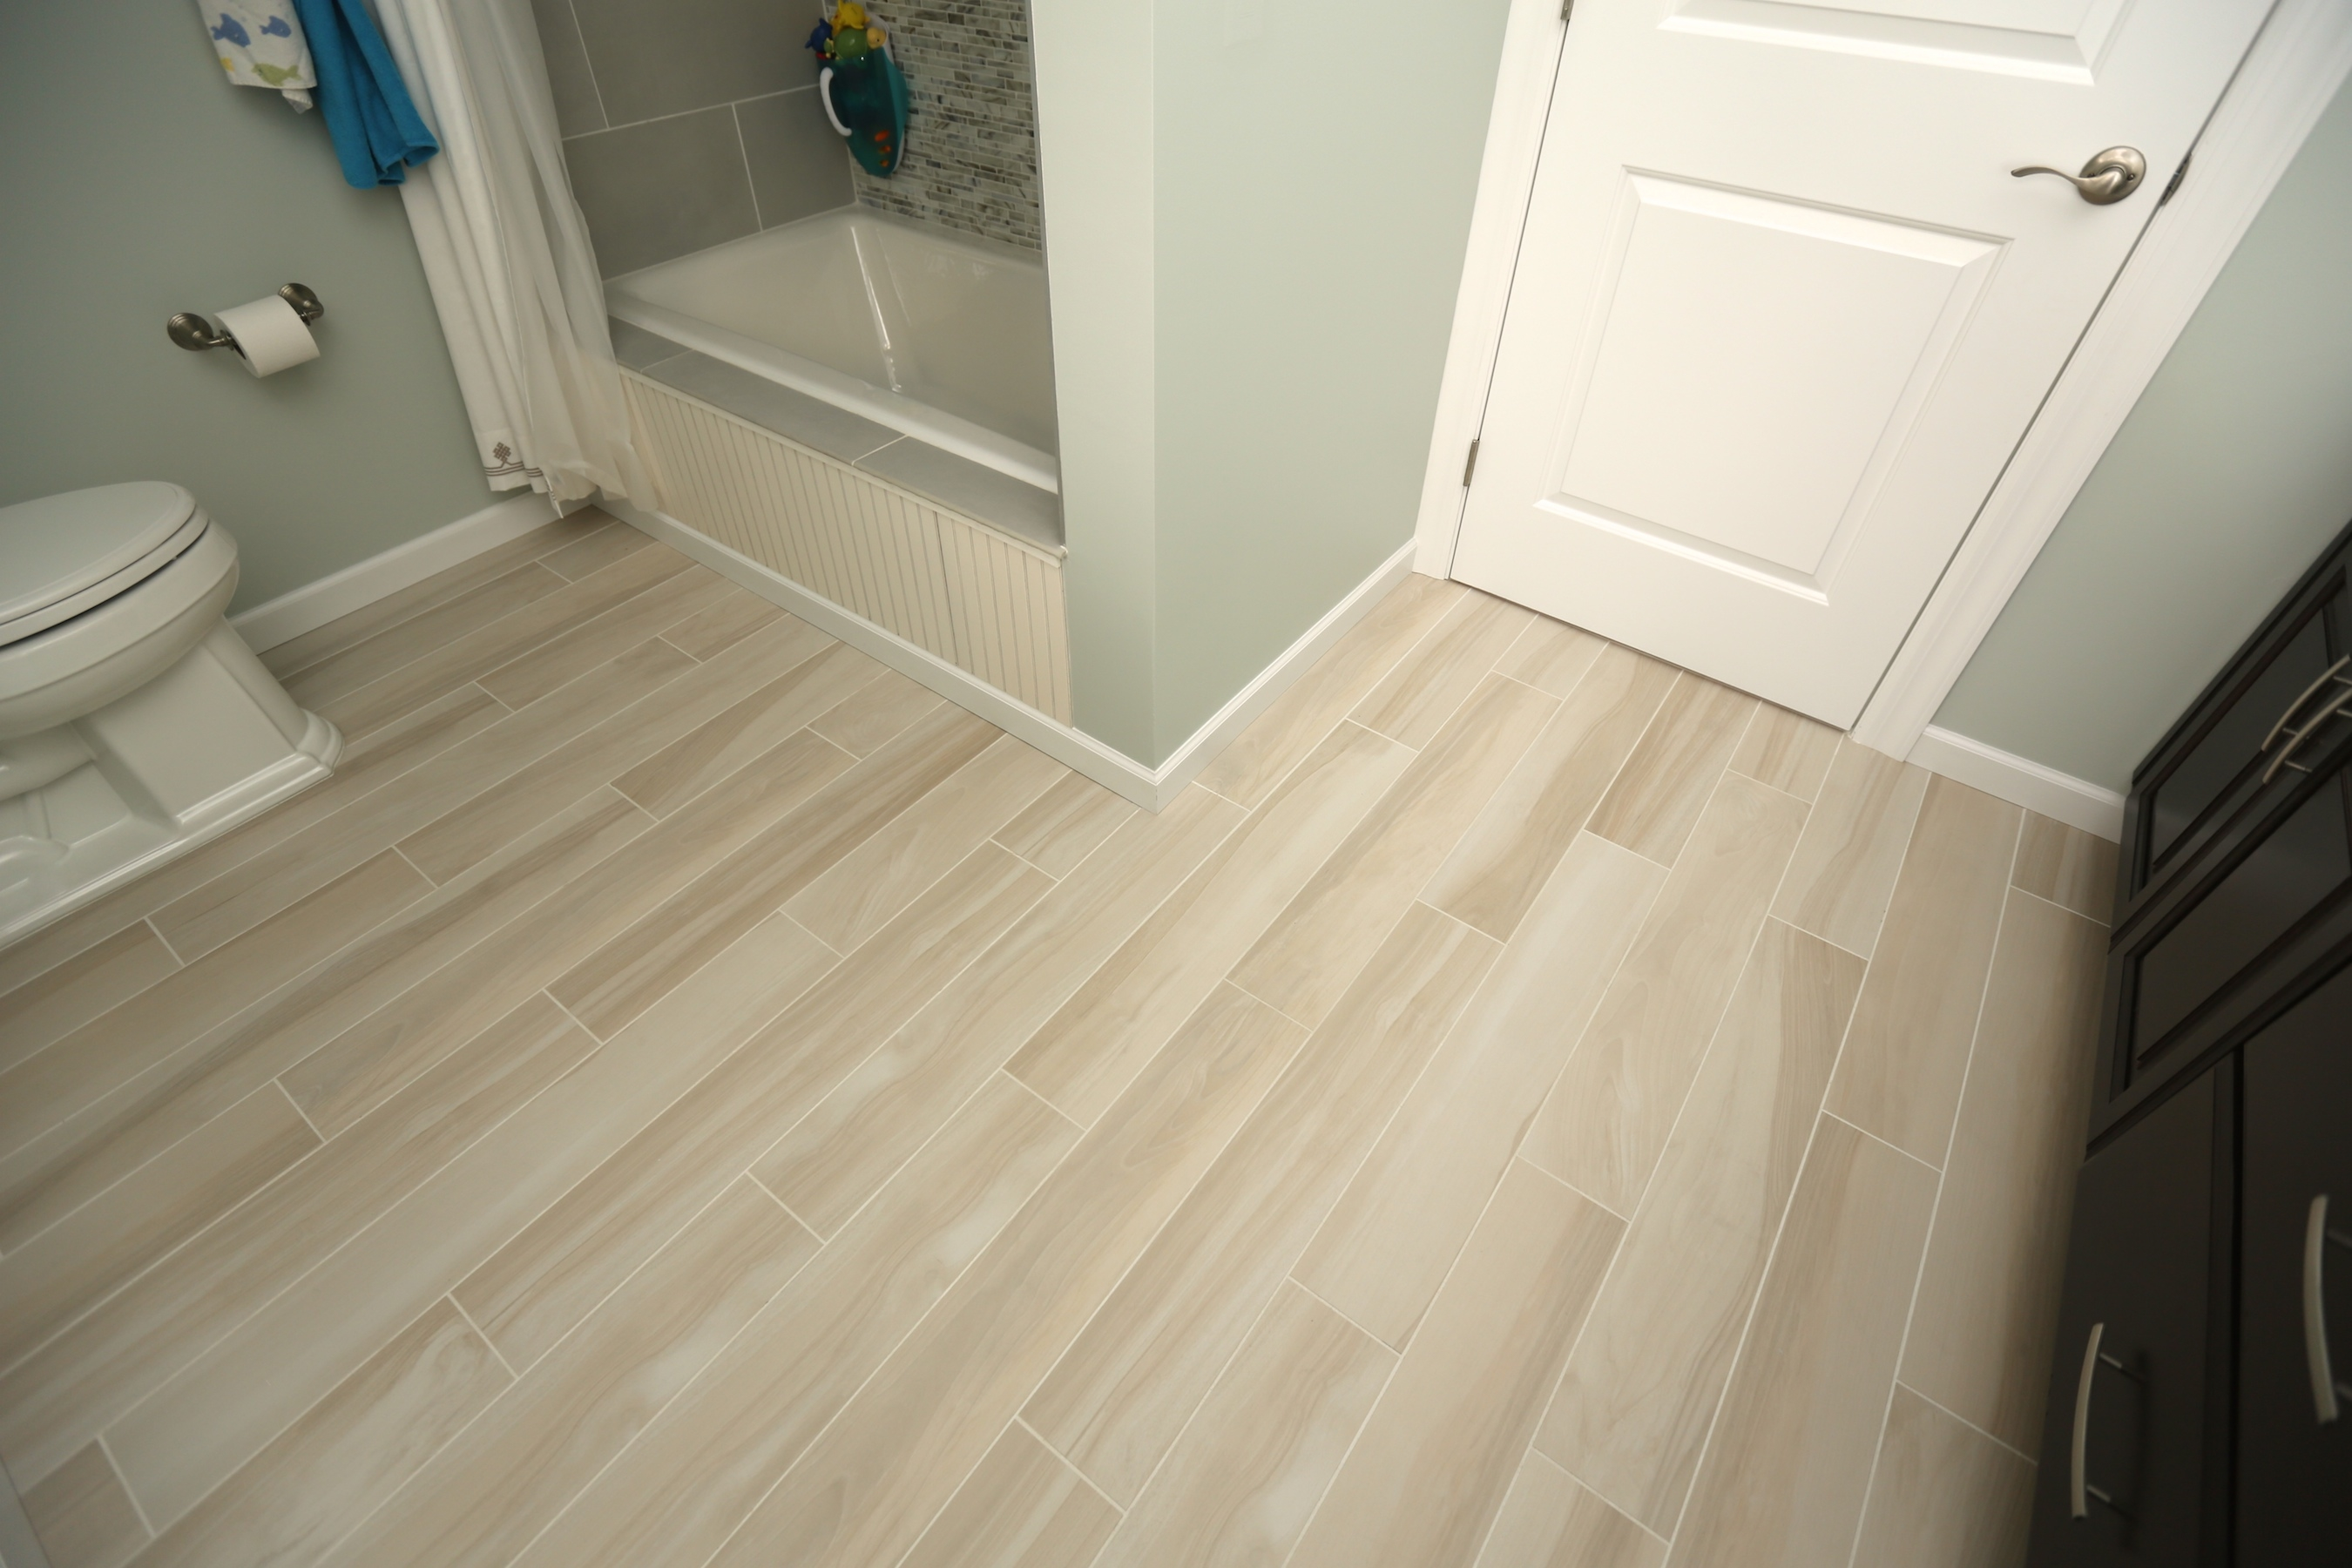 Greenfield flooring coupons near me in henrietta 8coupons for Flooring places near me